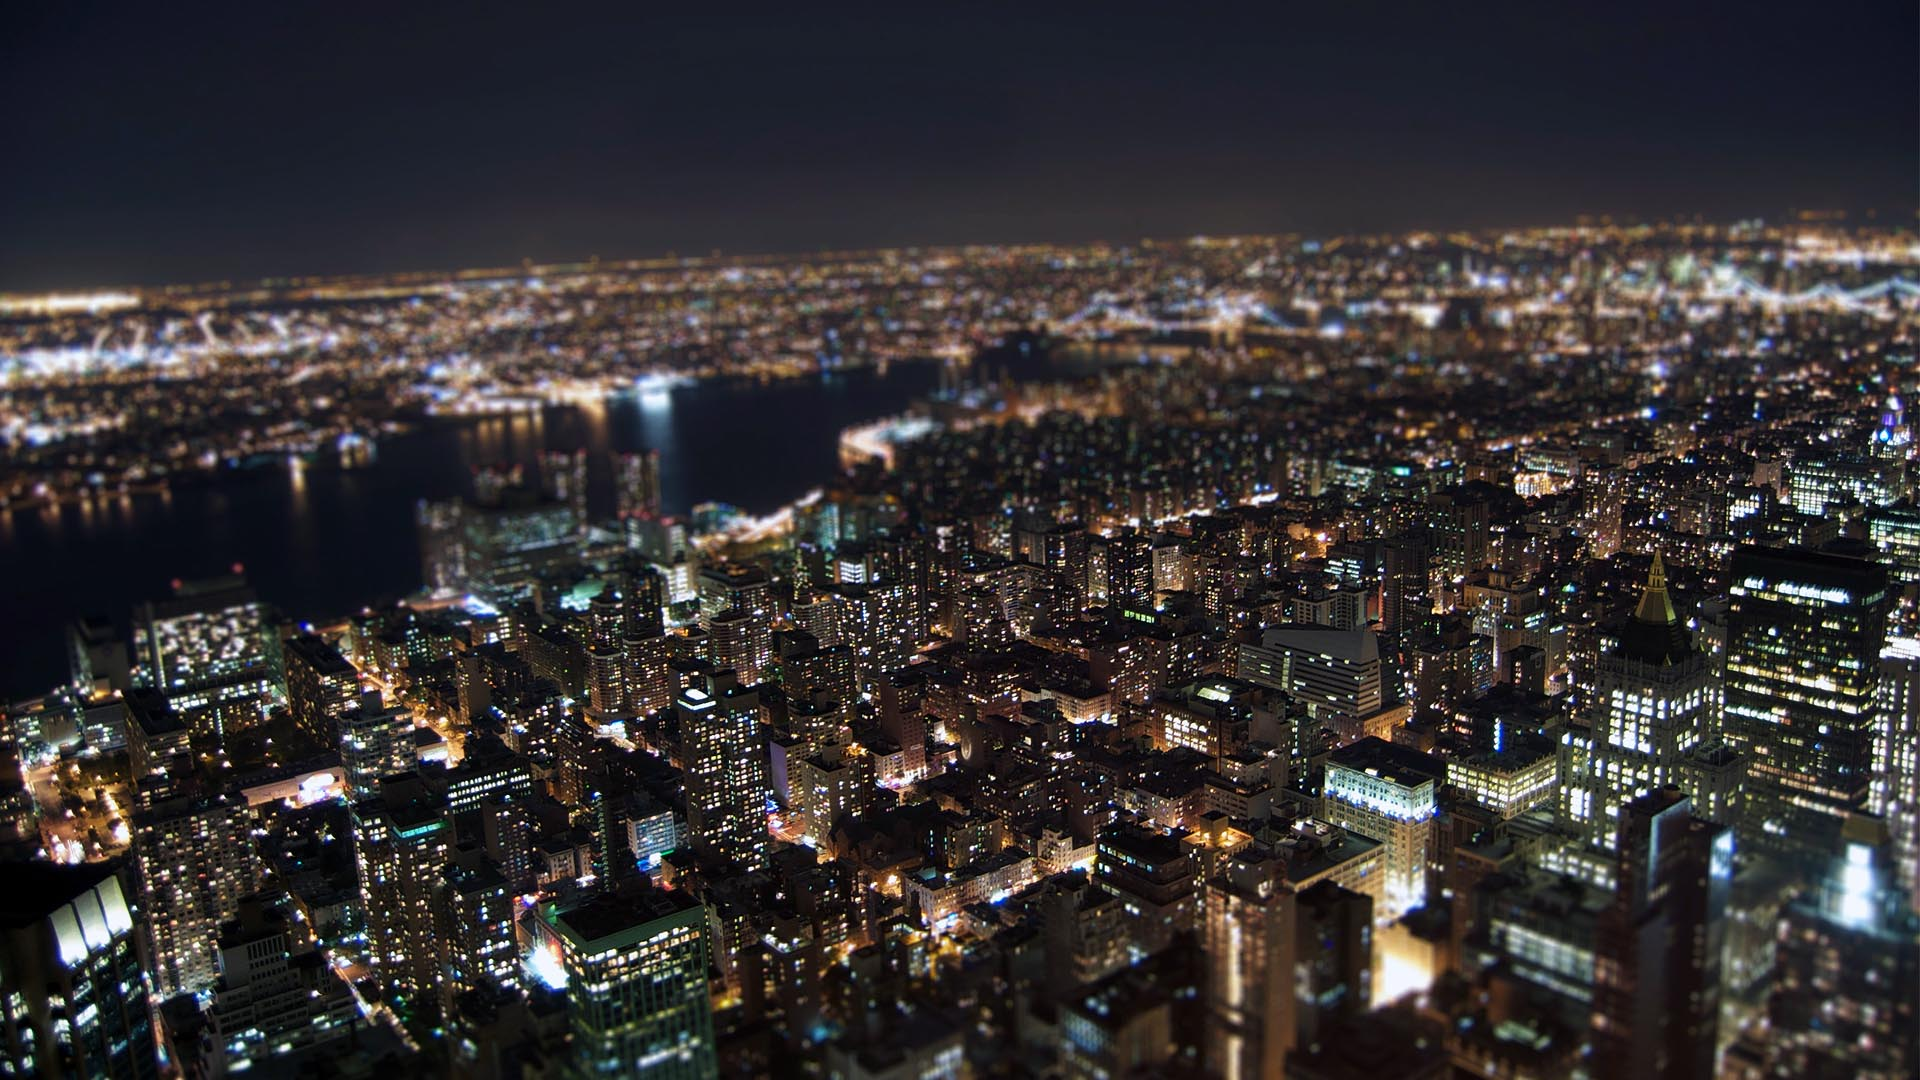 New York Night HD Wallpaper FullHDWpp   Full HD Wallpapers 1920x1080